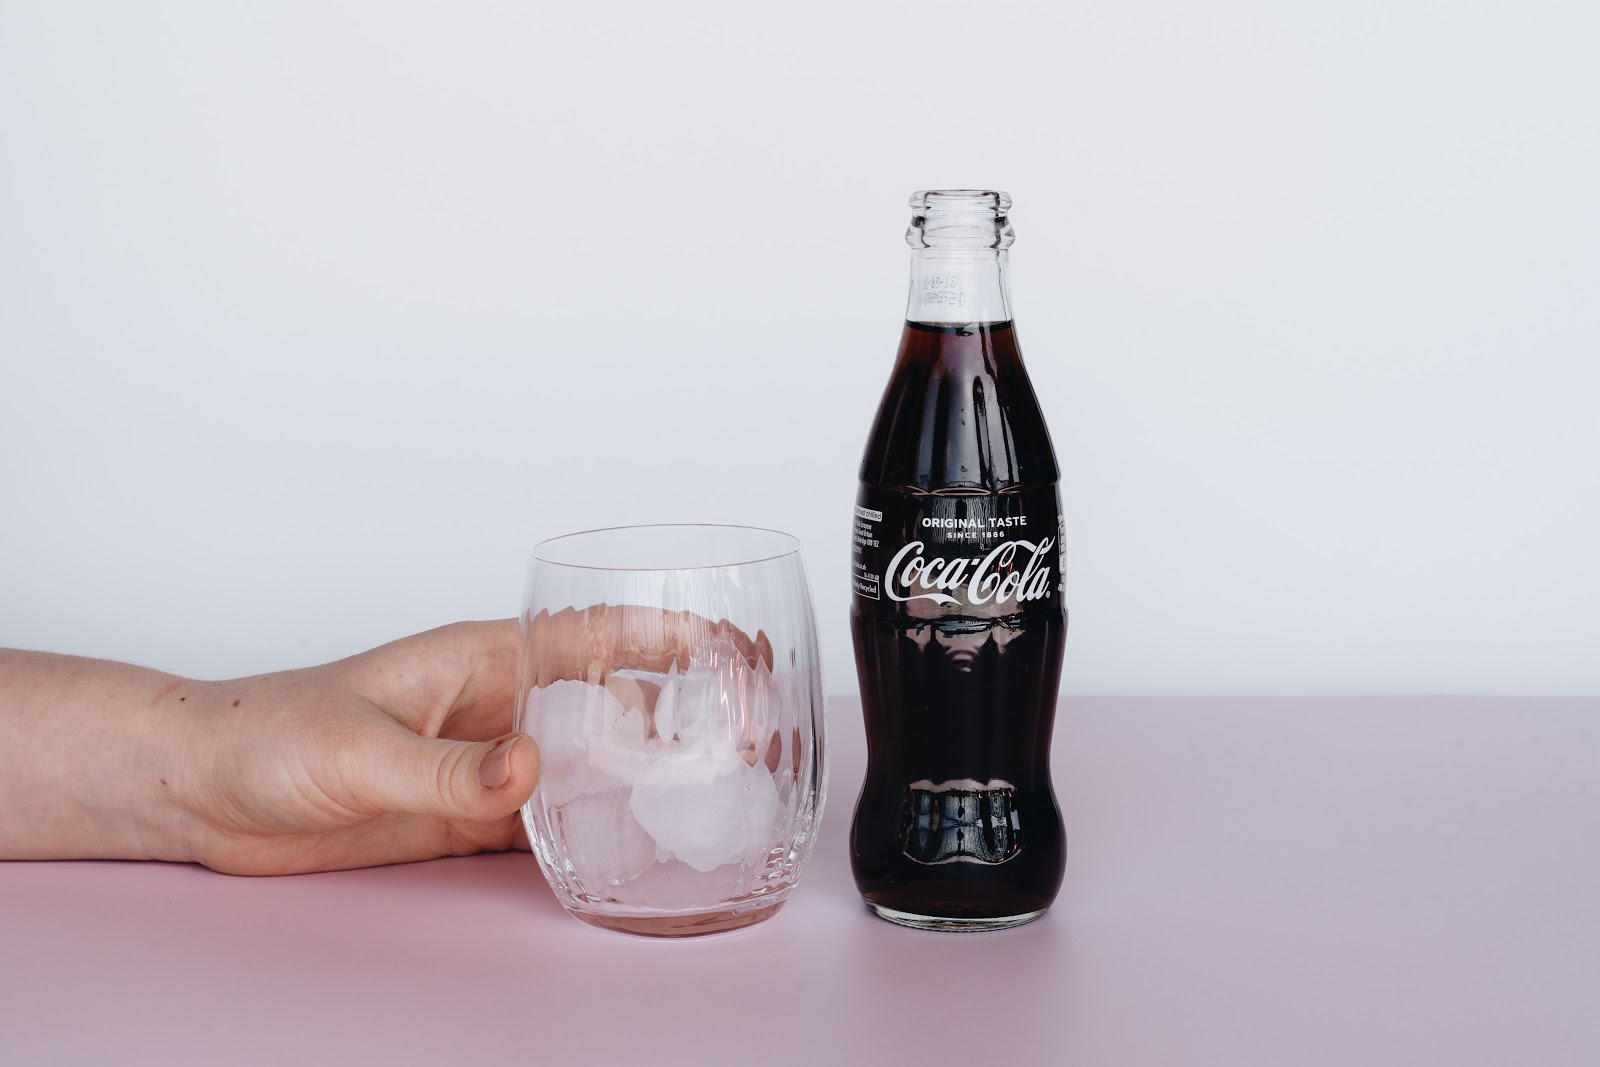 bottle of coca cola next to glass